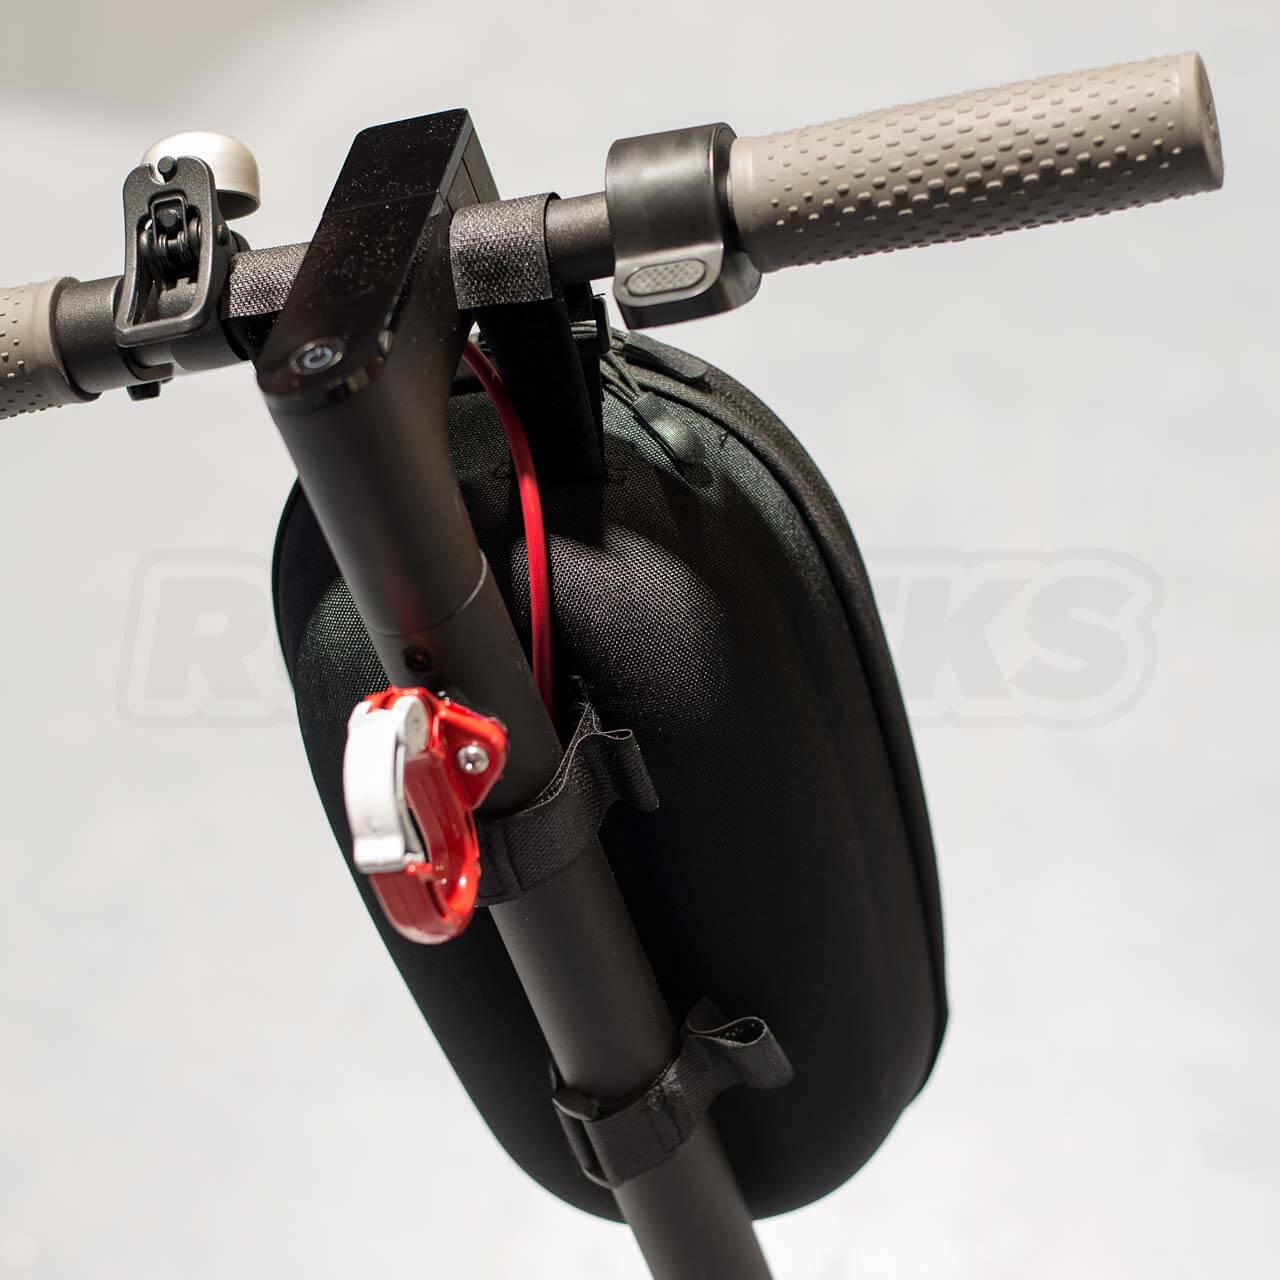 Mi-Electric-Scooter-Accessories-Handle-Storage-Bag-mounted-fixed